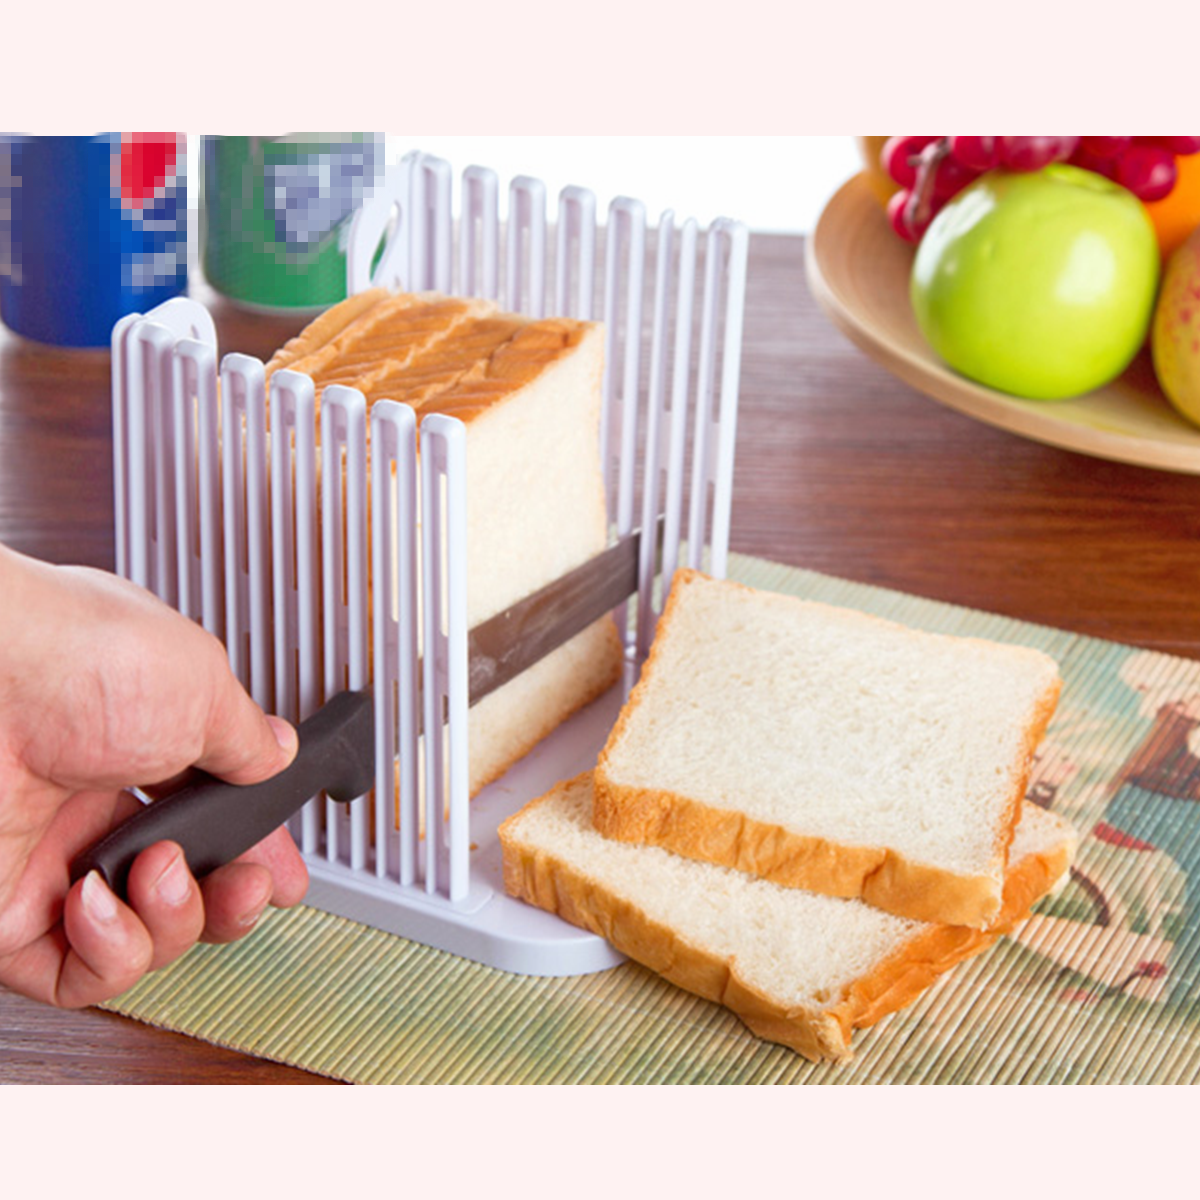 1/2Pcs Bread Slicer Cutter Foldable and Adjustable Bread Toast Slicer Bagel Slicer Loaf Sandwich Bread Slicer Toast Slice Cutter Mold